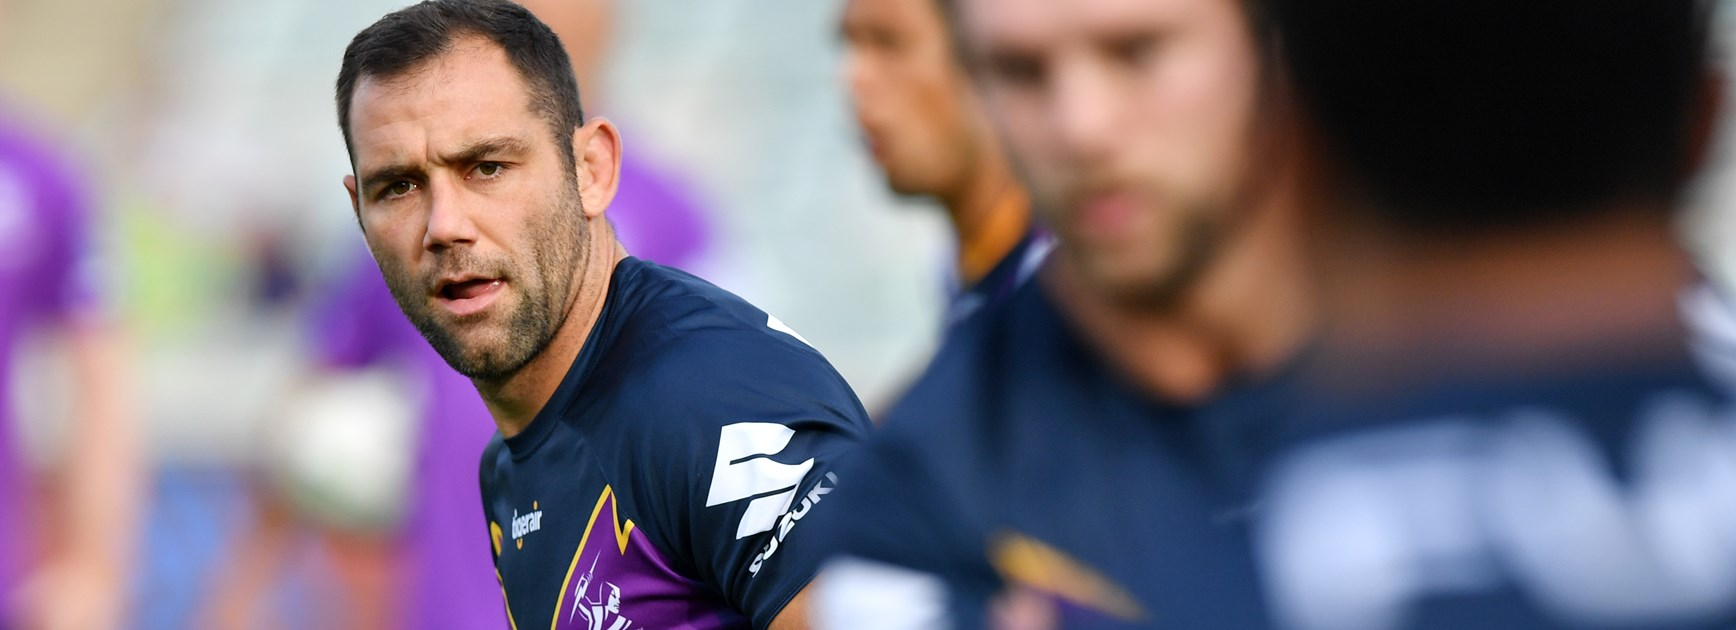 Smith confirms he'll suit up for Storm in 2020